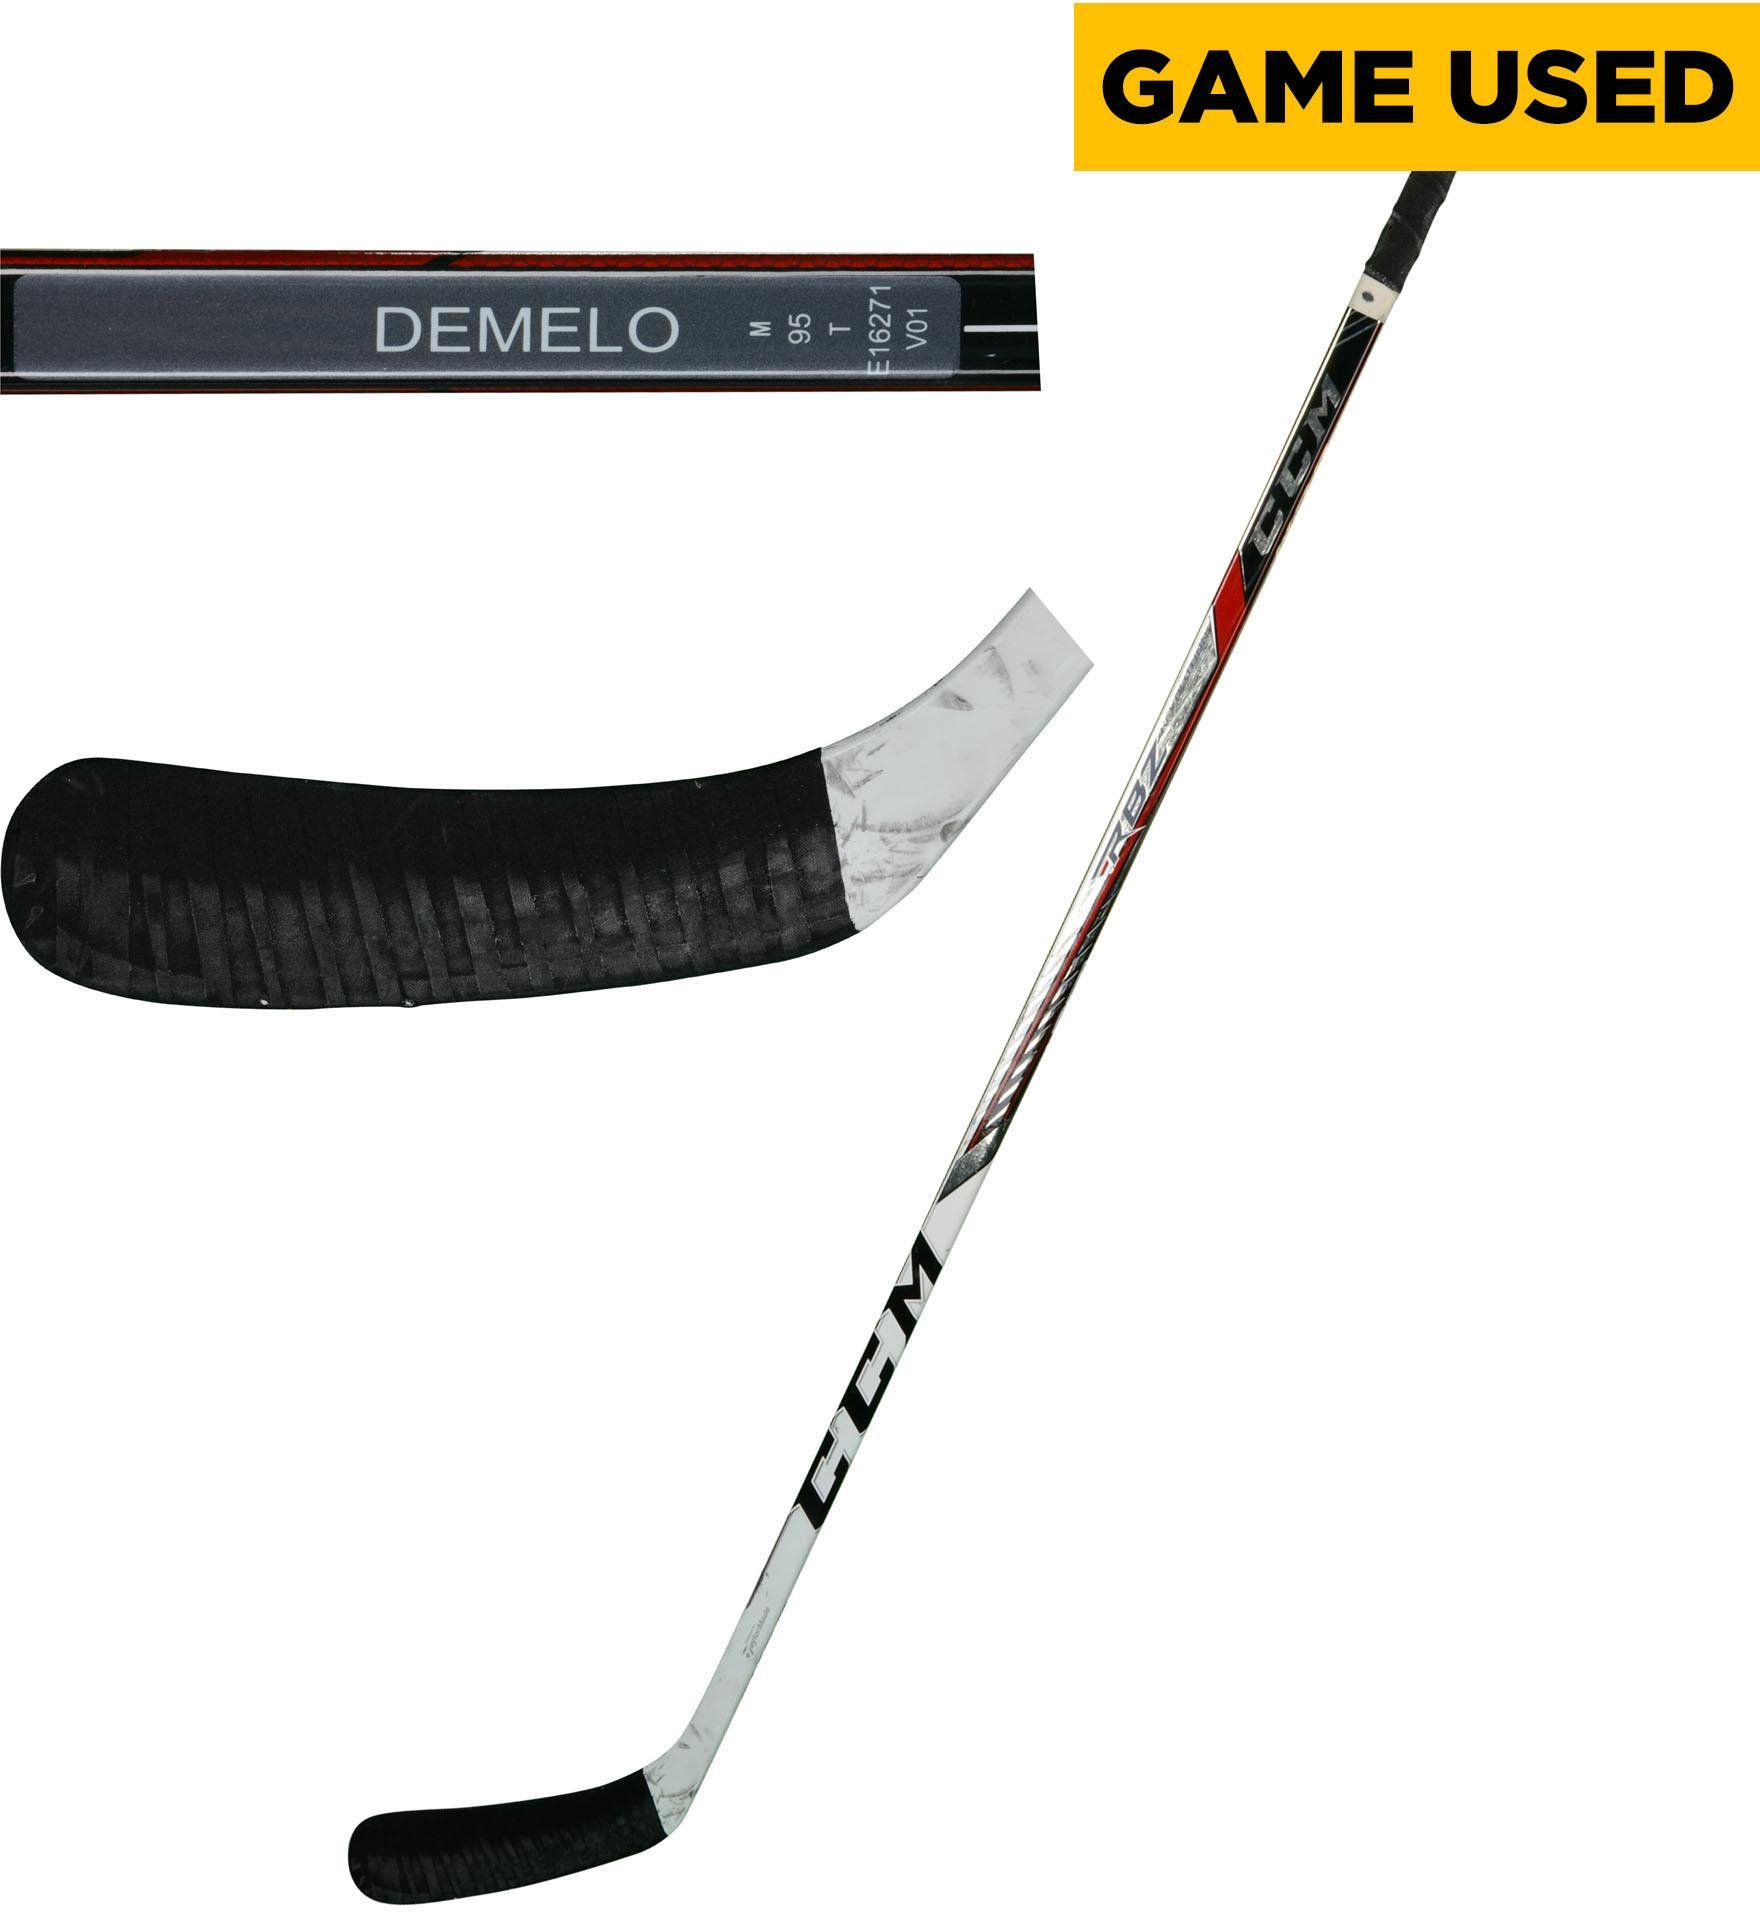 Dylan DeMelo San Jose Sharks Game Used Gray CCM Hockey Stick from the 2017 18 NHL Season Fanatics Authentic Certified